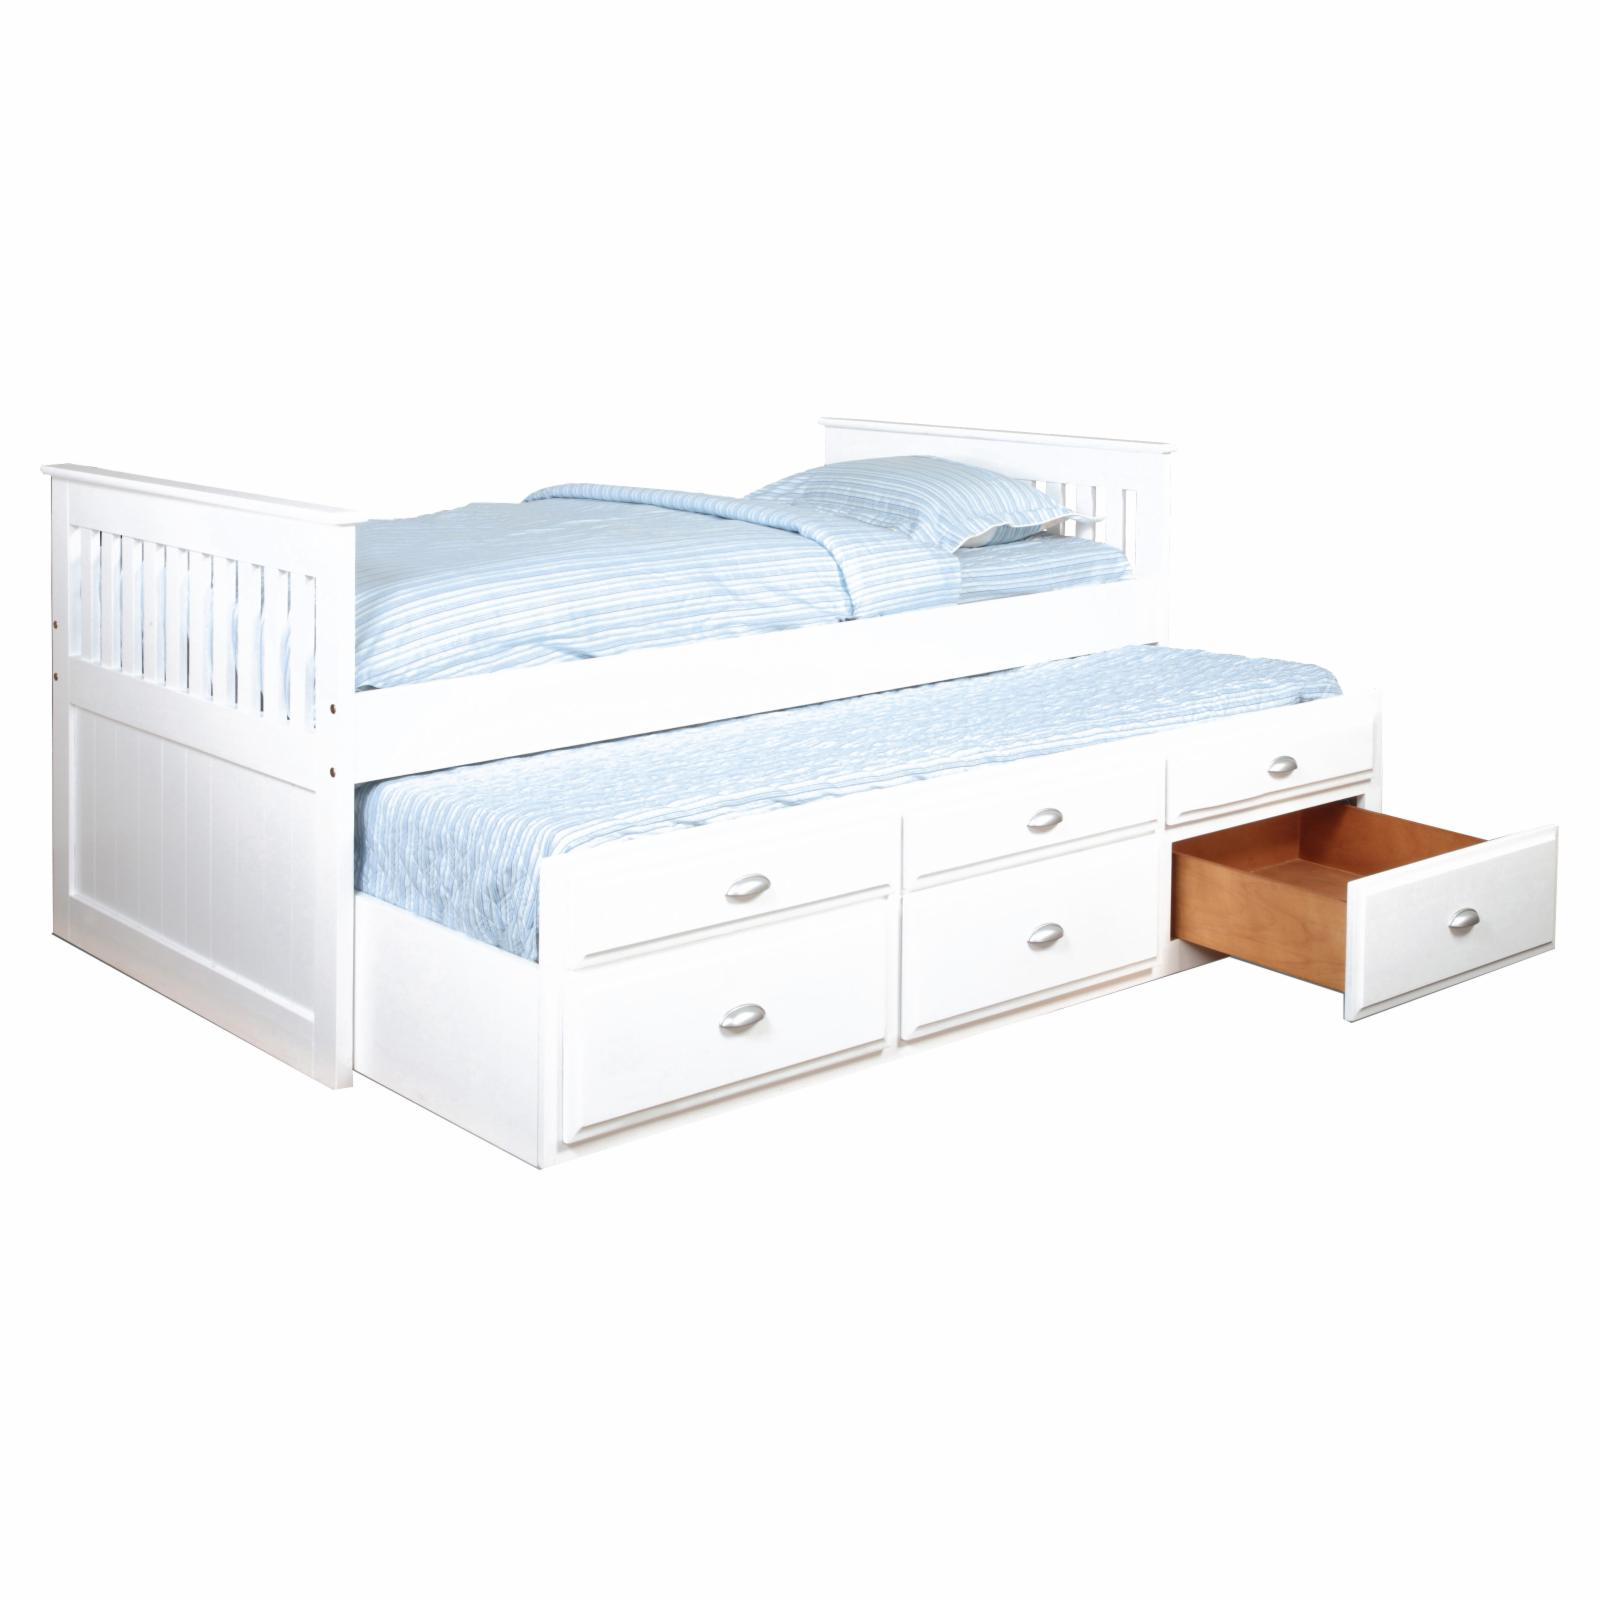 Bernards Furniture Twin Captains Bed with Trundle White -...